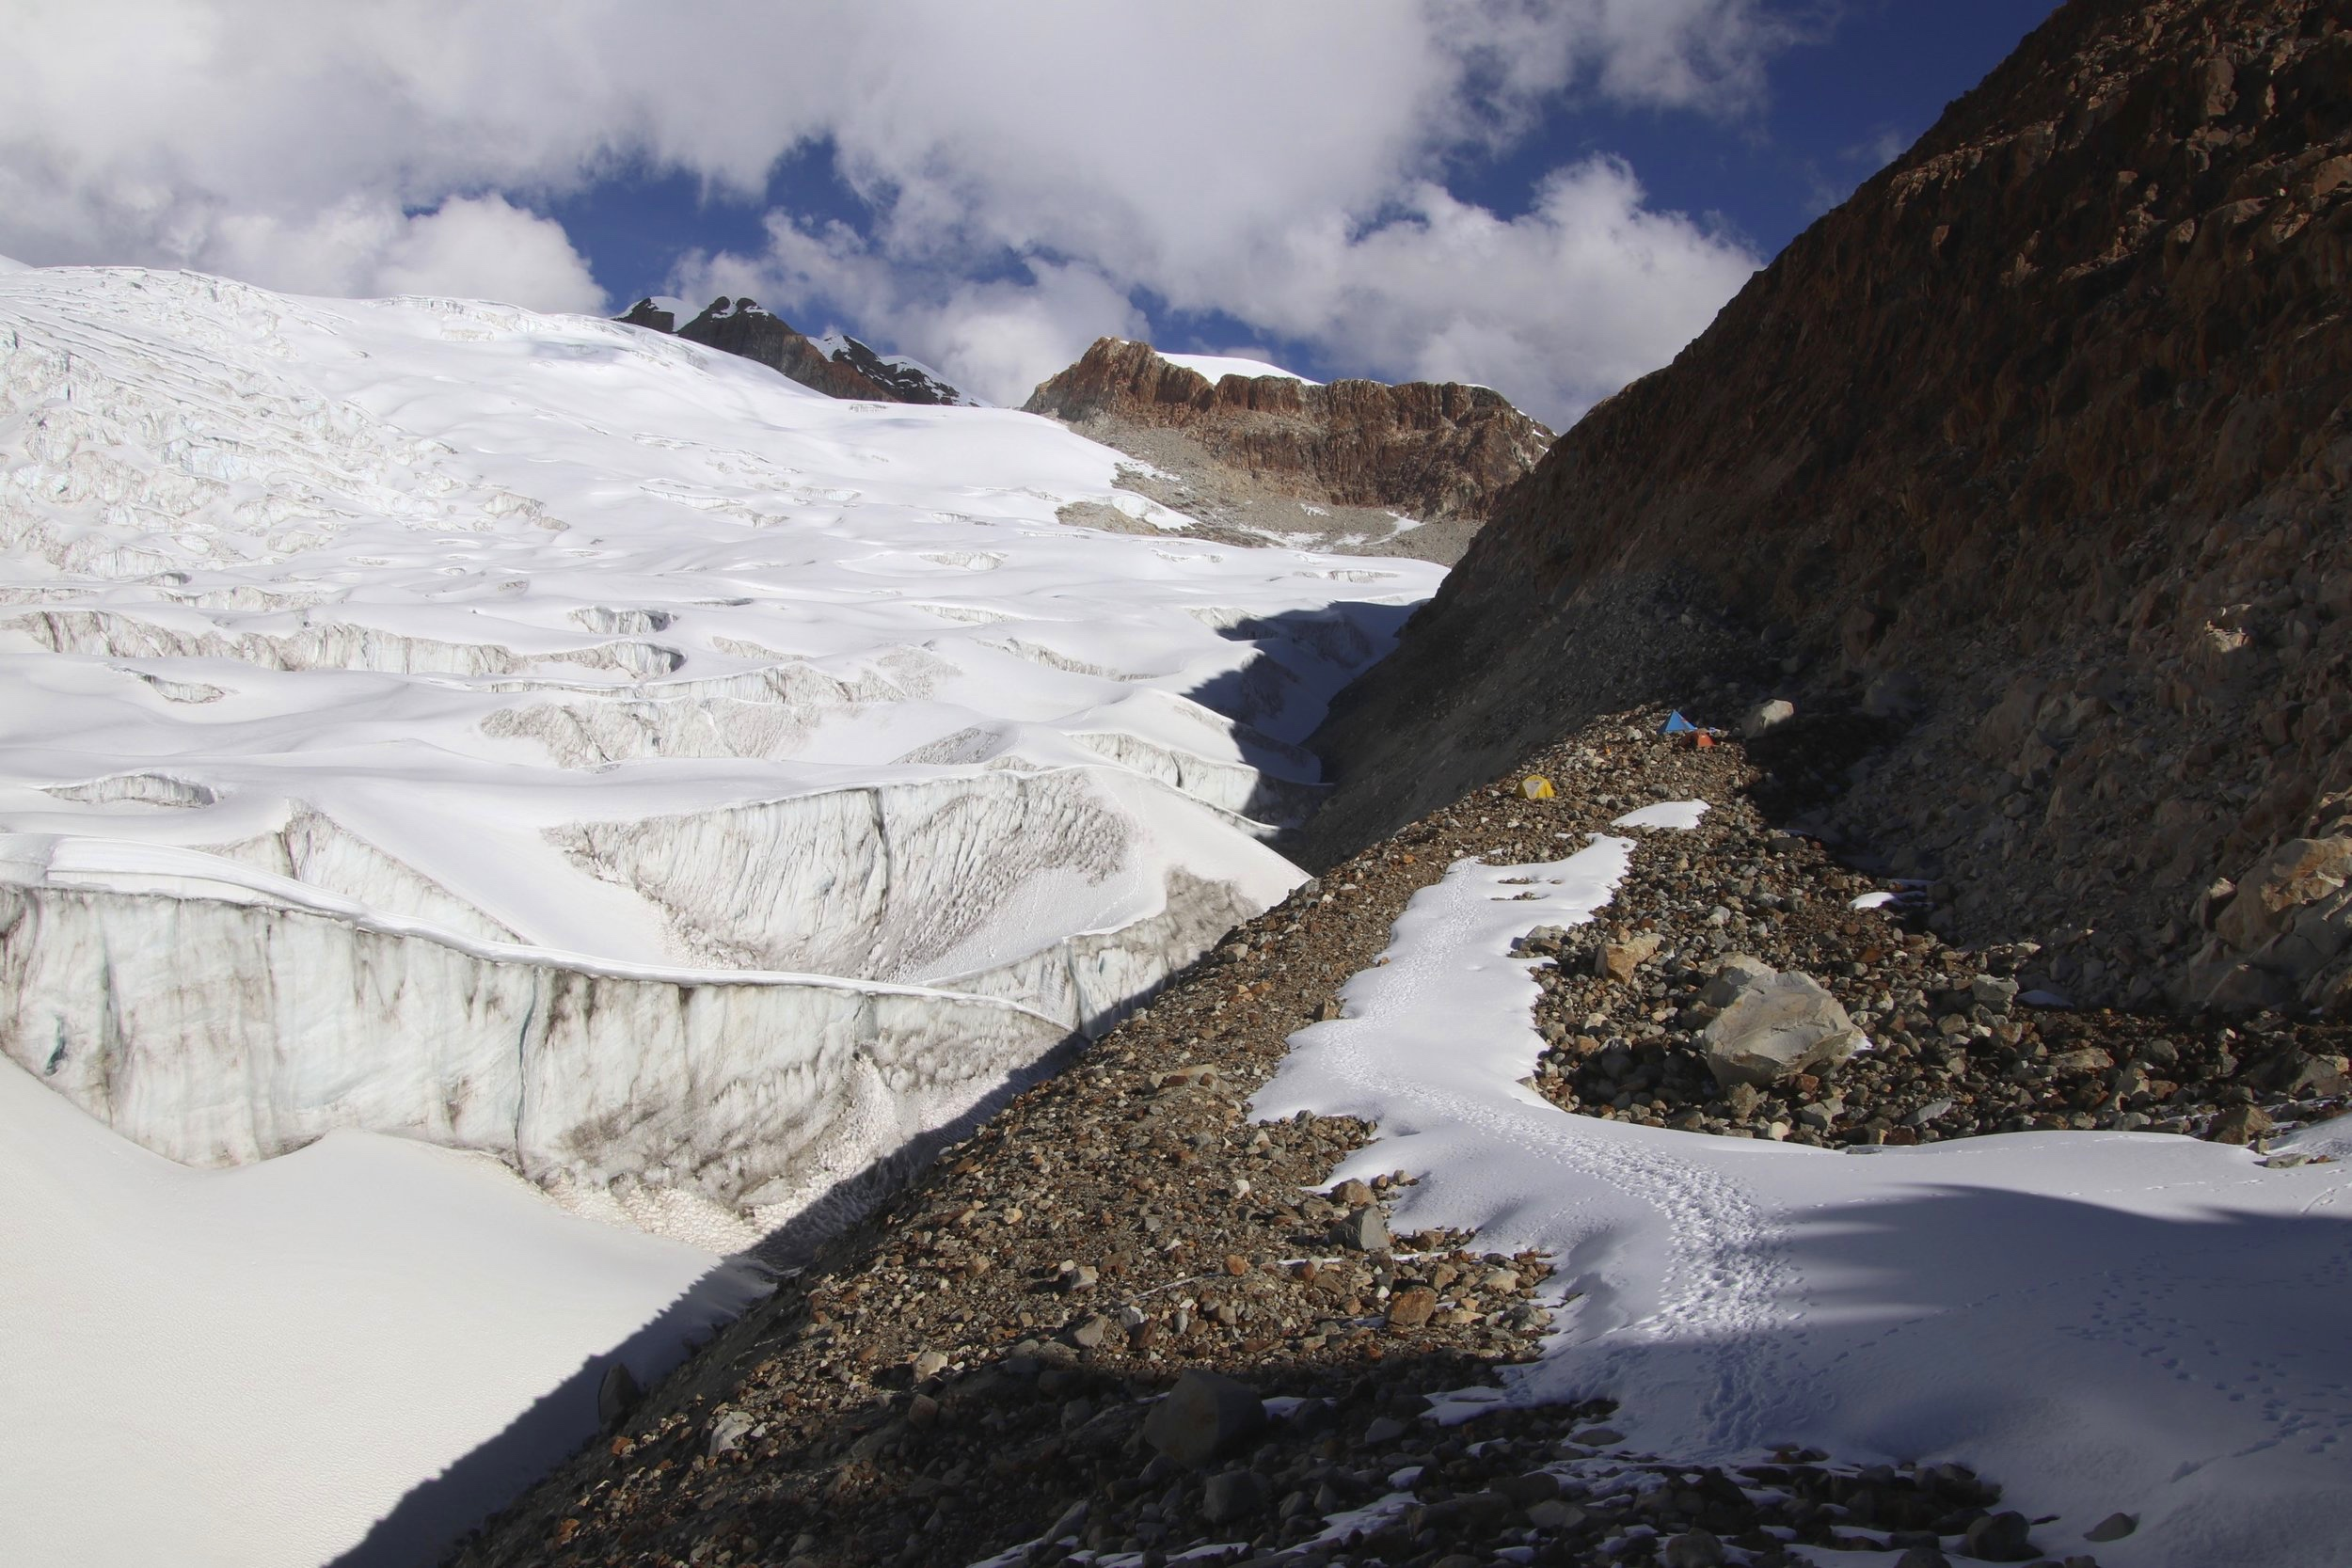 The high camp.